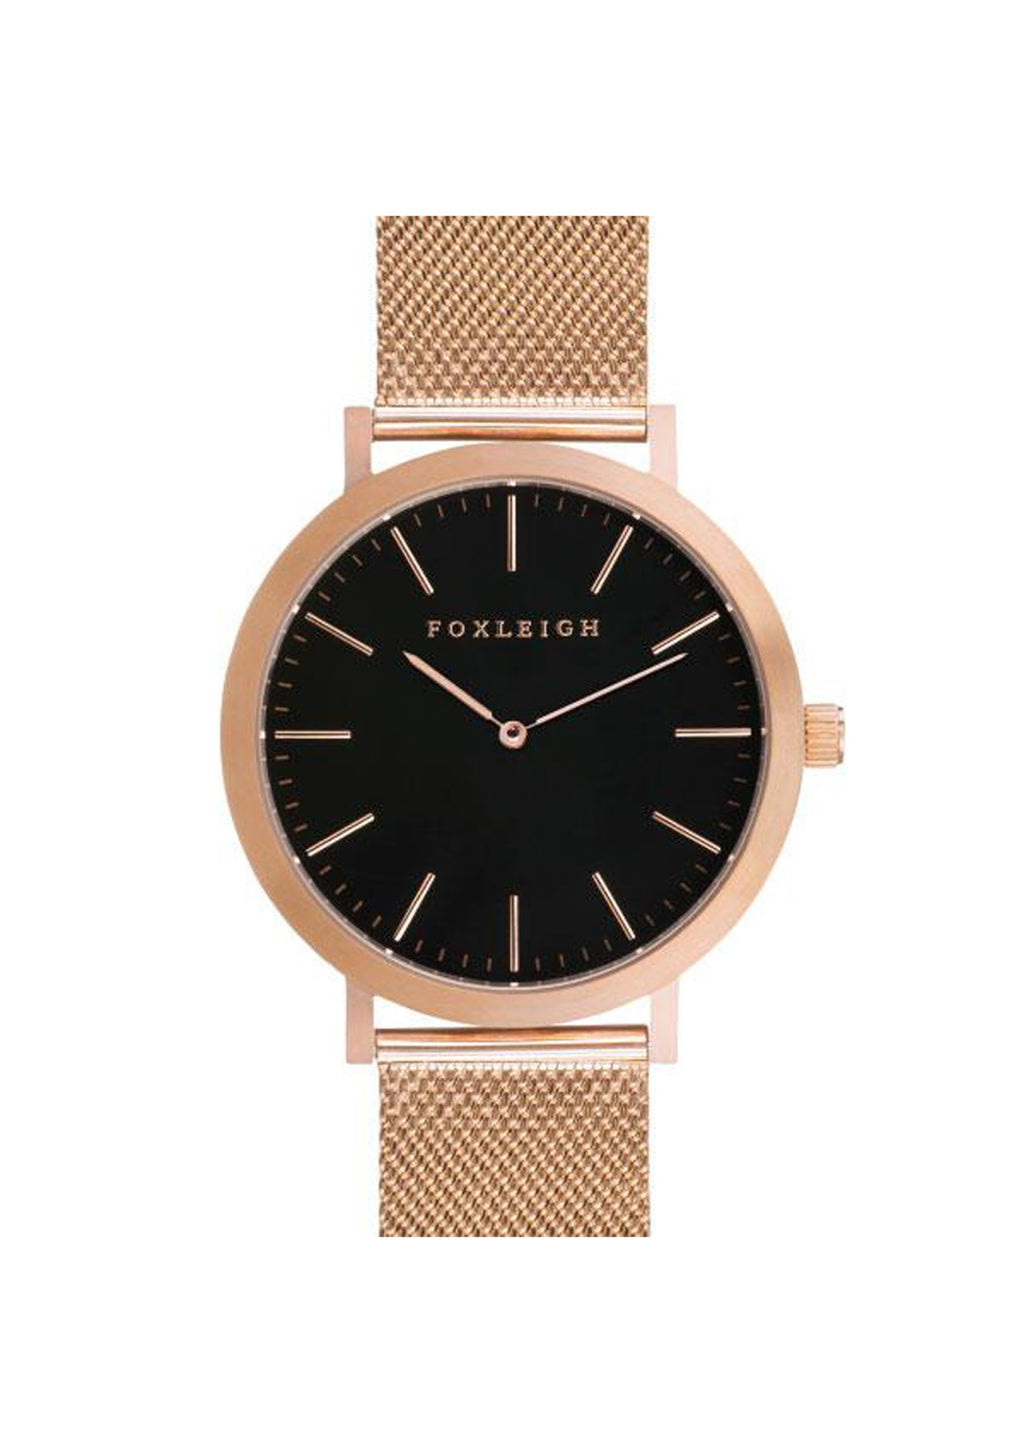 Foxleigh Mesh Strap Watches